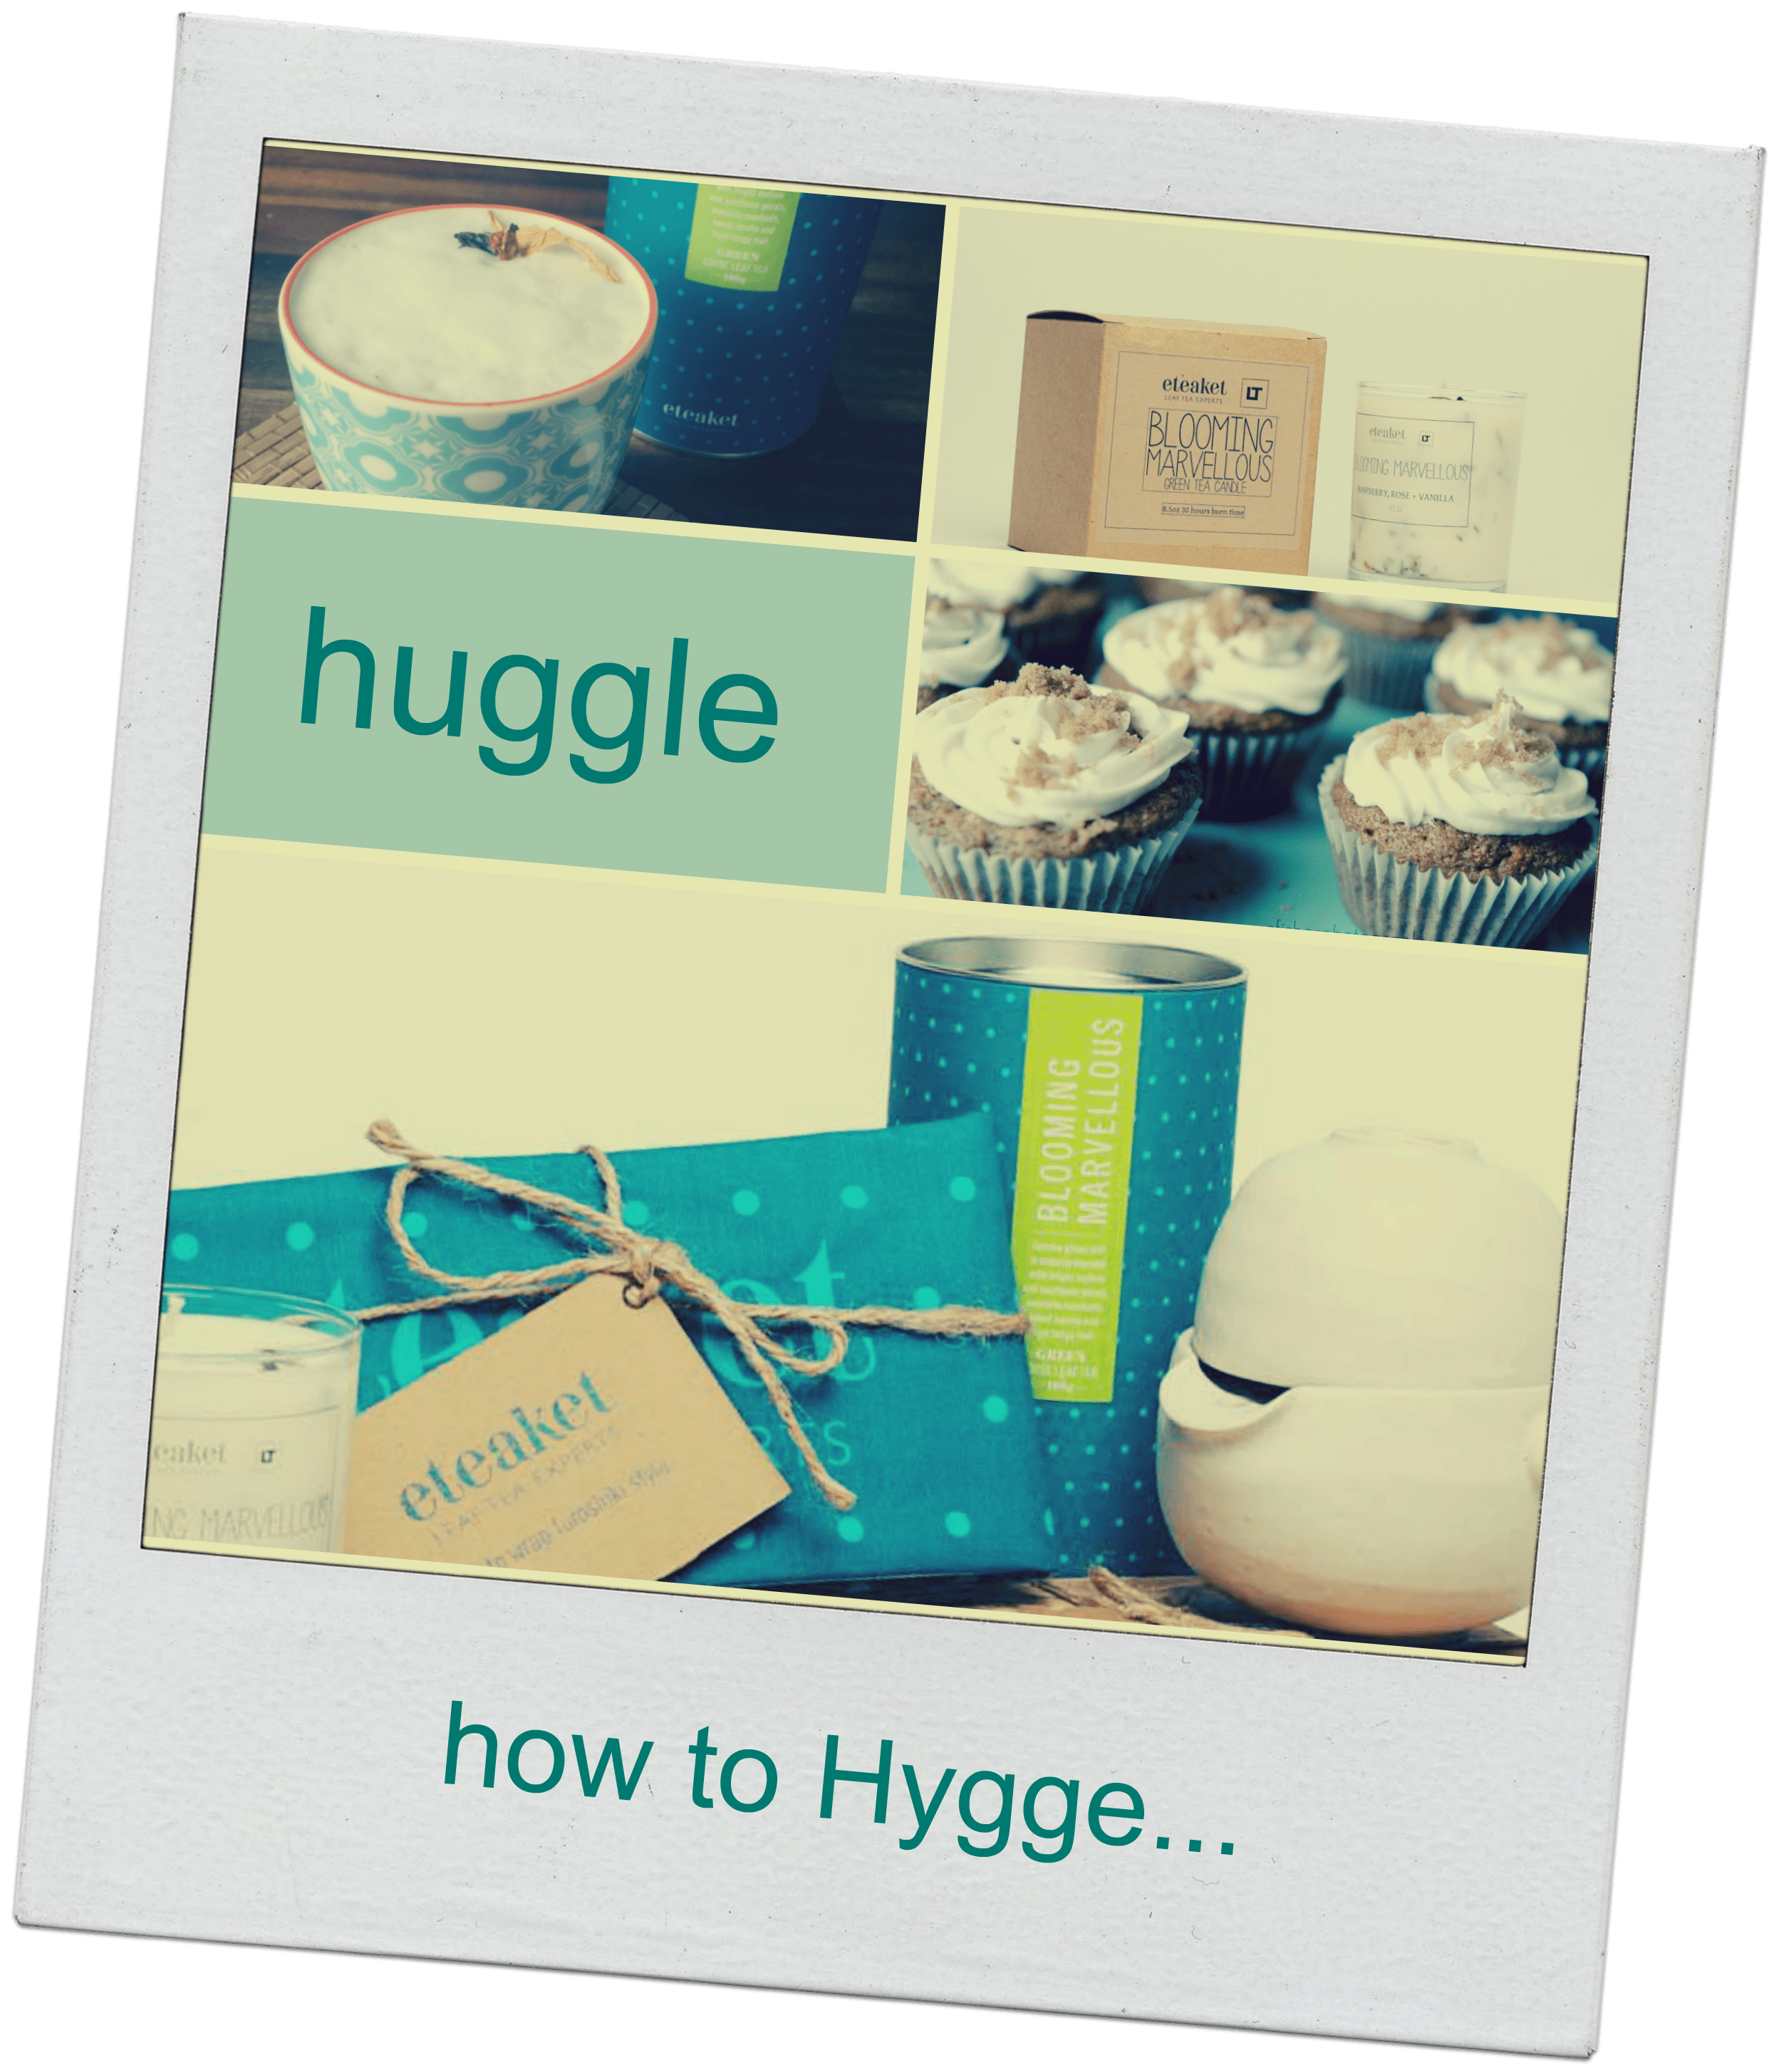 Hygge tea eteaket moment